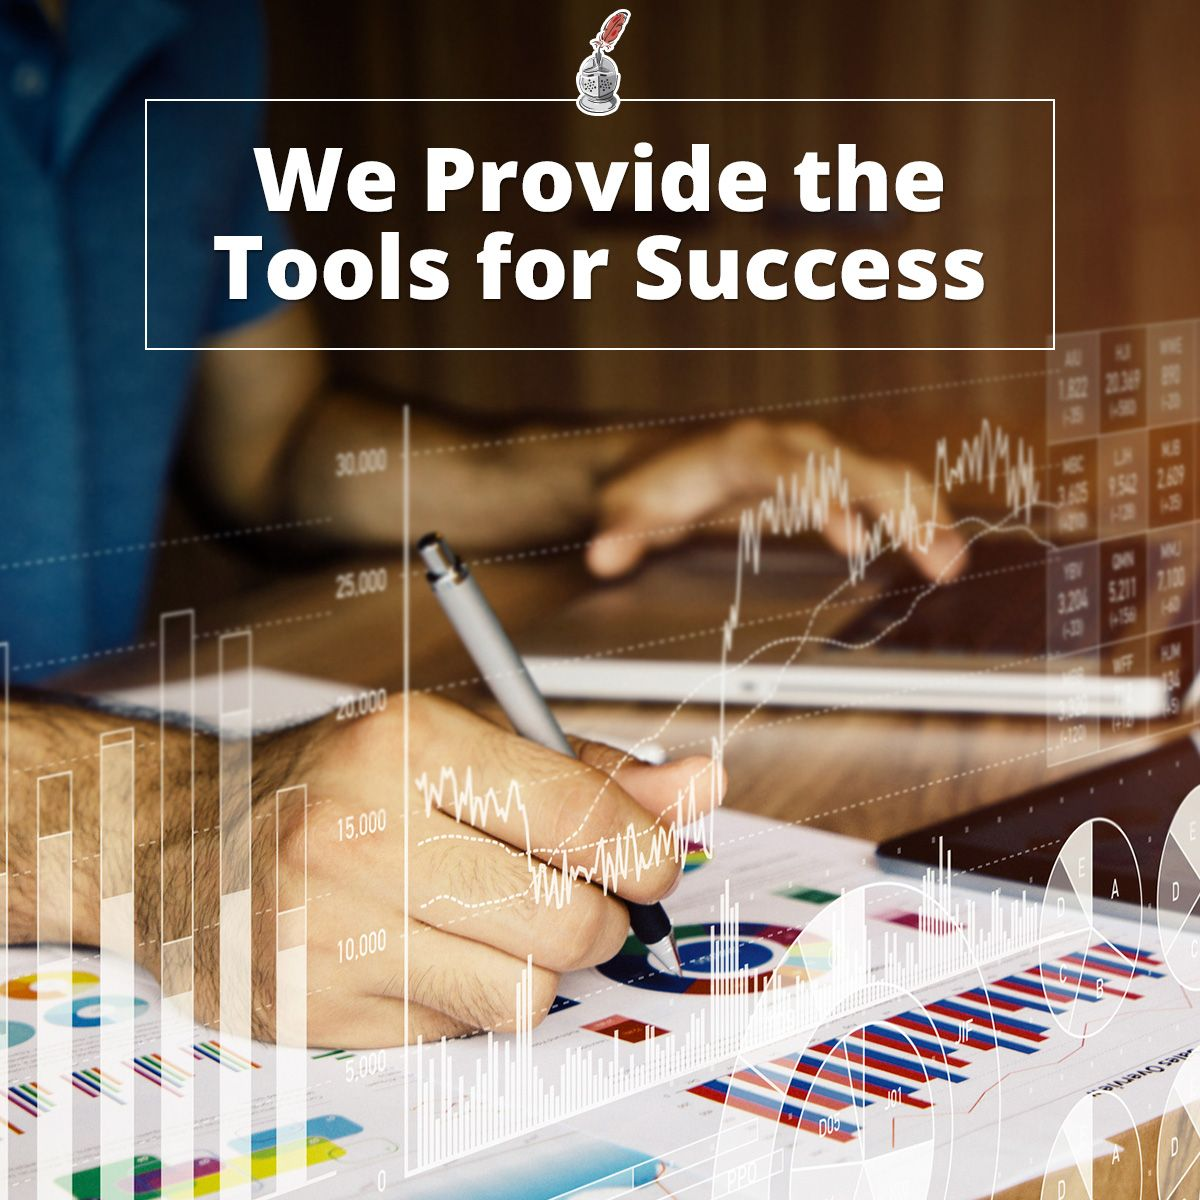 We Provide the Tools for Success